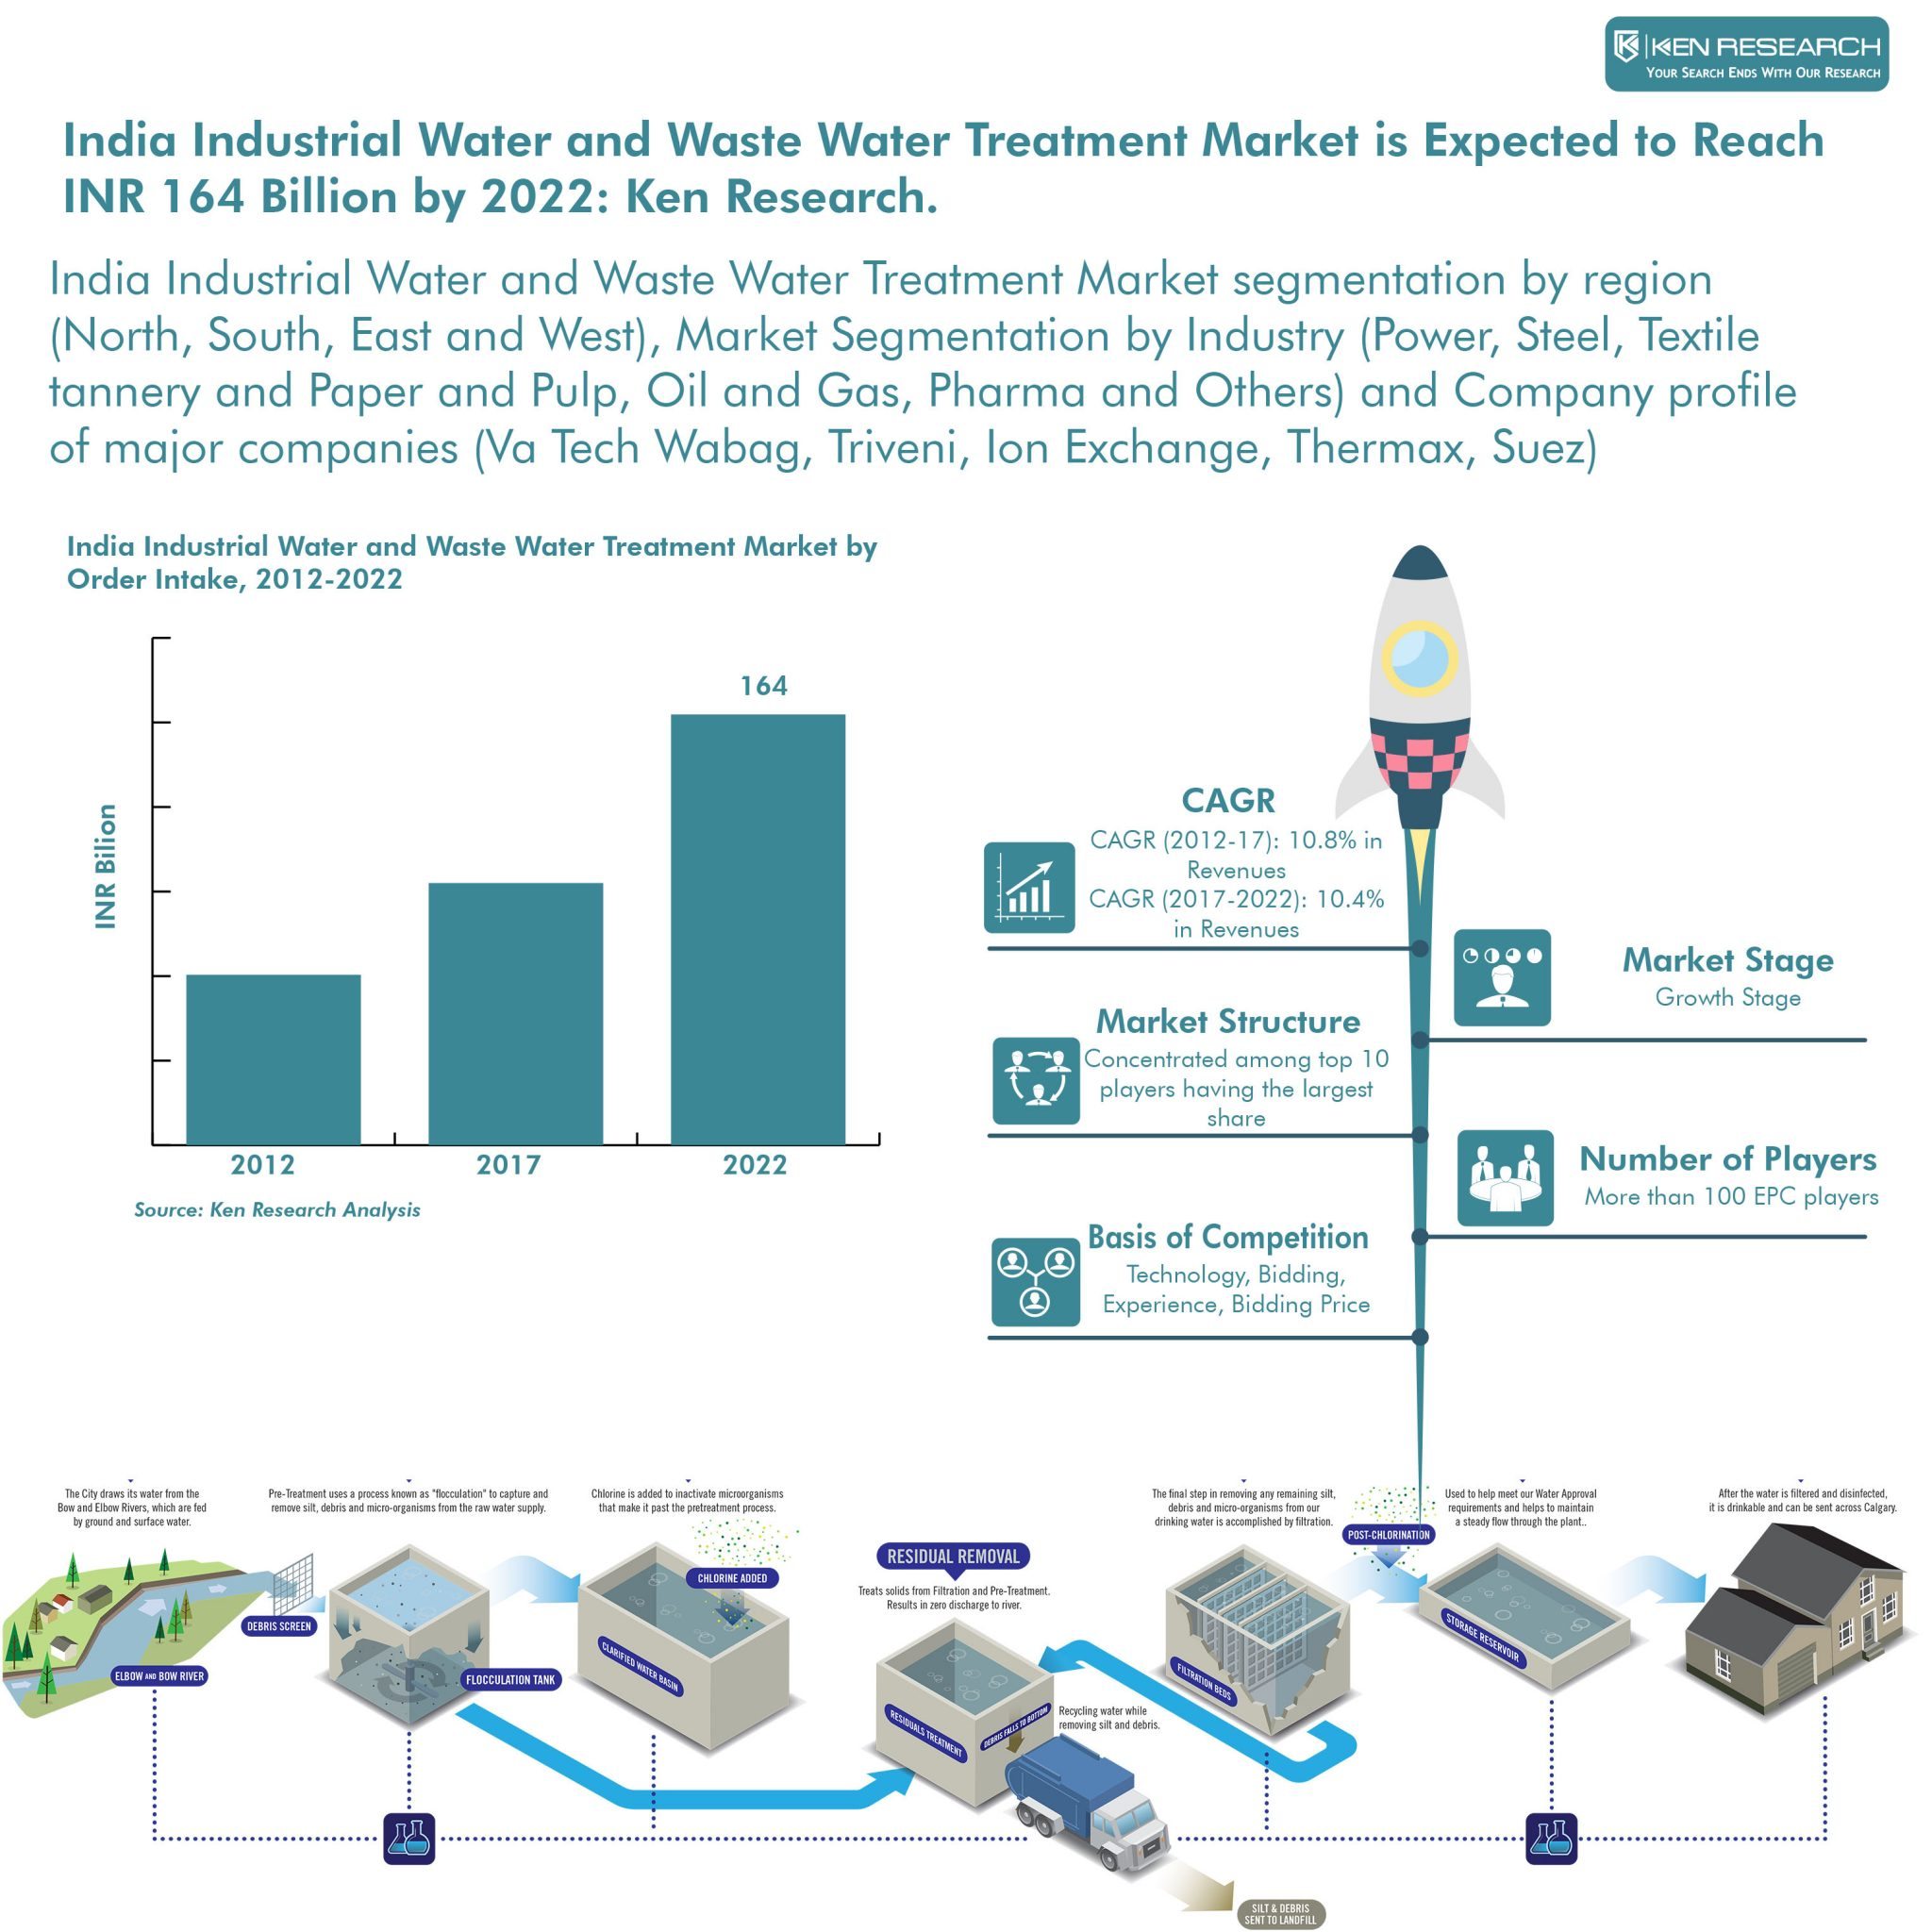 India Industrial Water and Waste Water Treatment Market